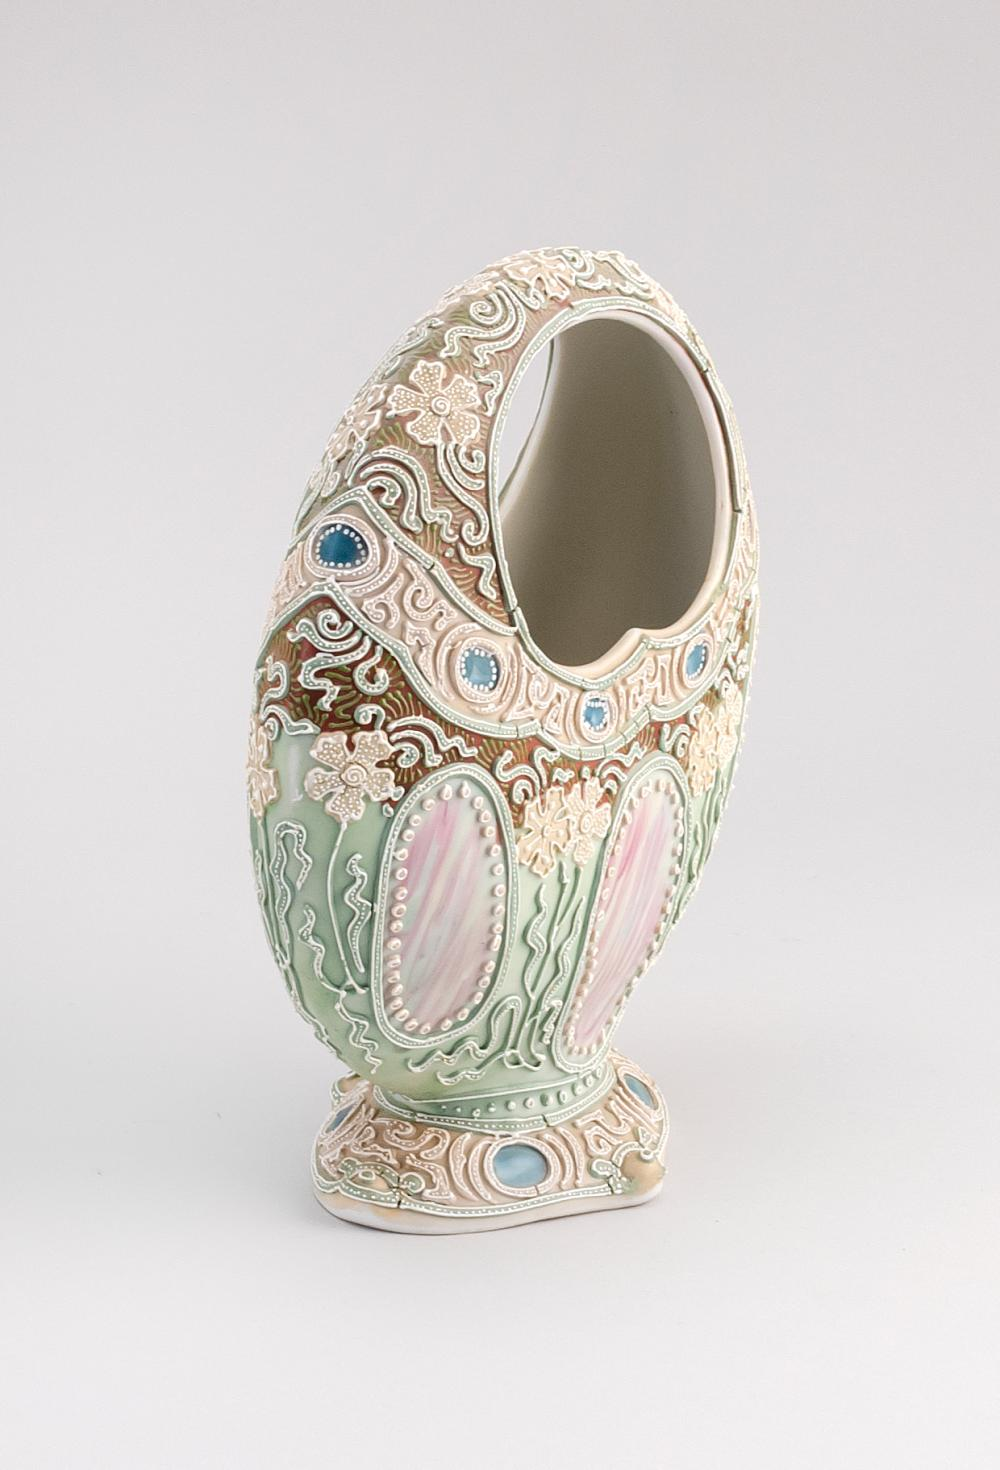 MORIAGE NIPPON PORCELAIN VASE In basket form, with stylized floral design. Height 8.75